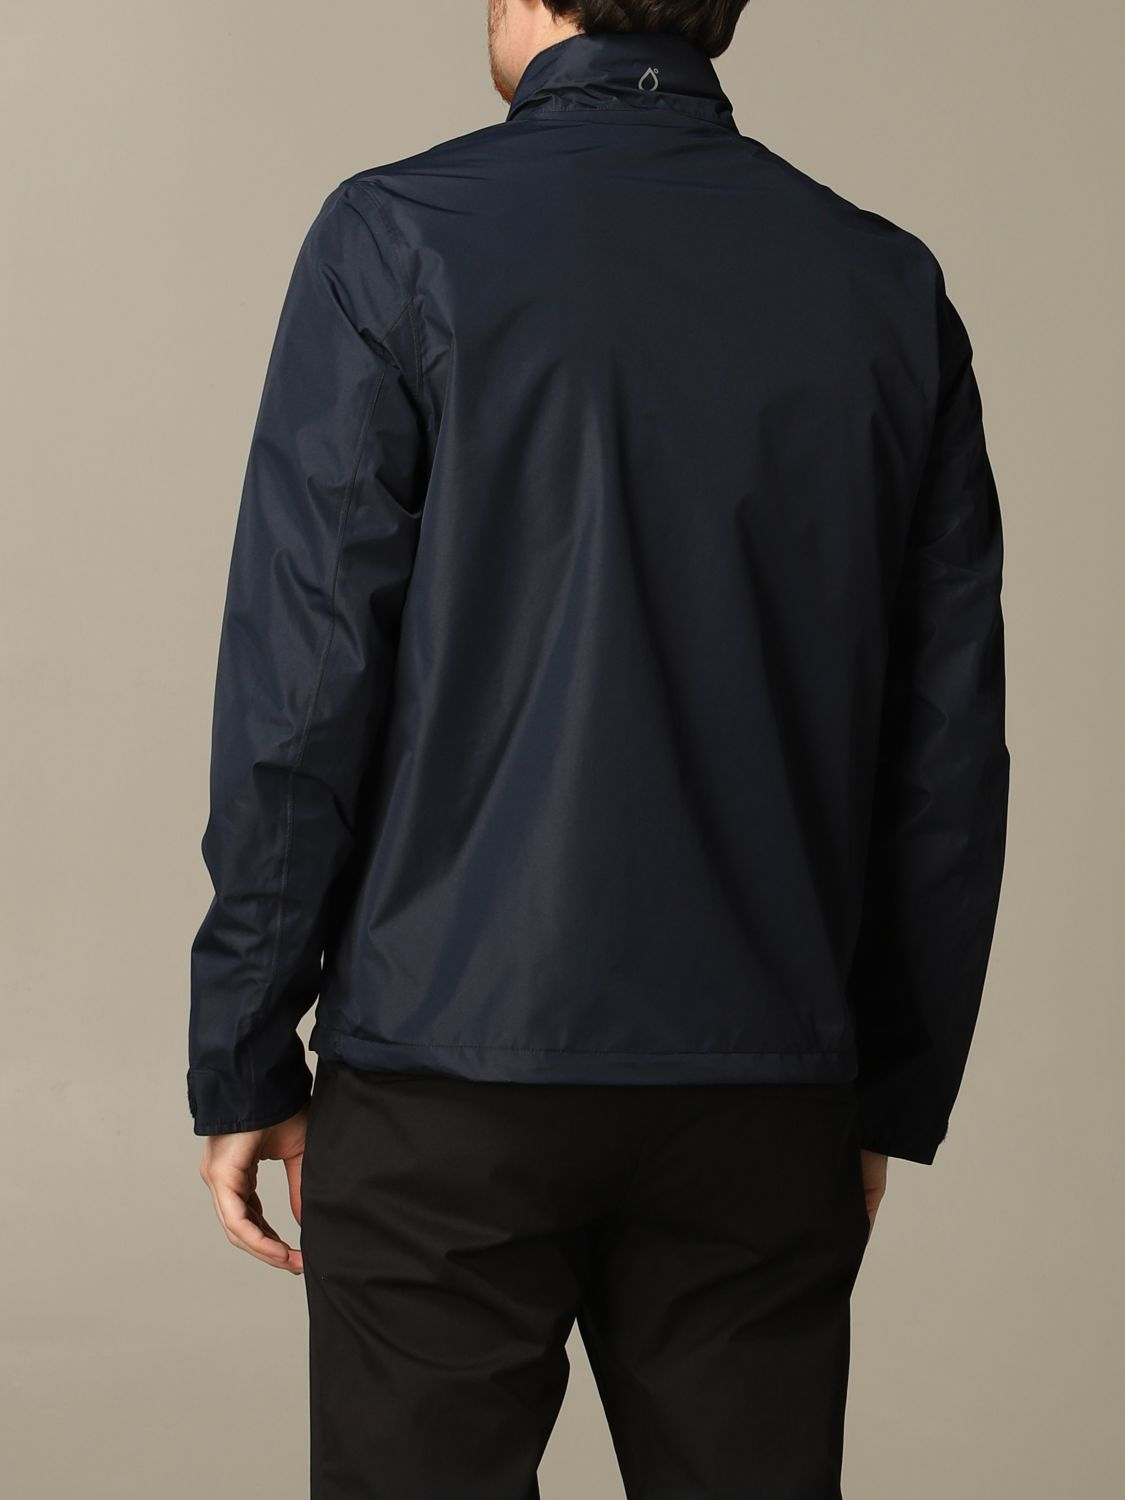 Jacke Barbour: Jacke herren Barbour navy 2